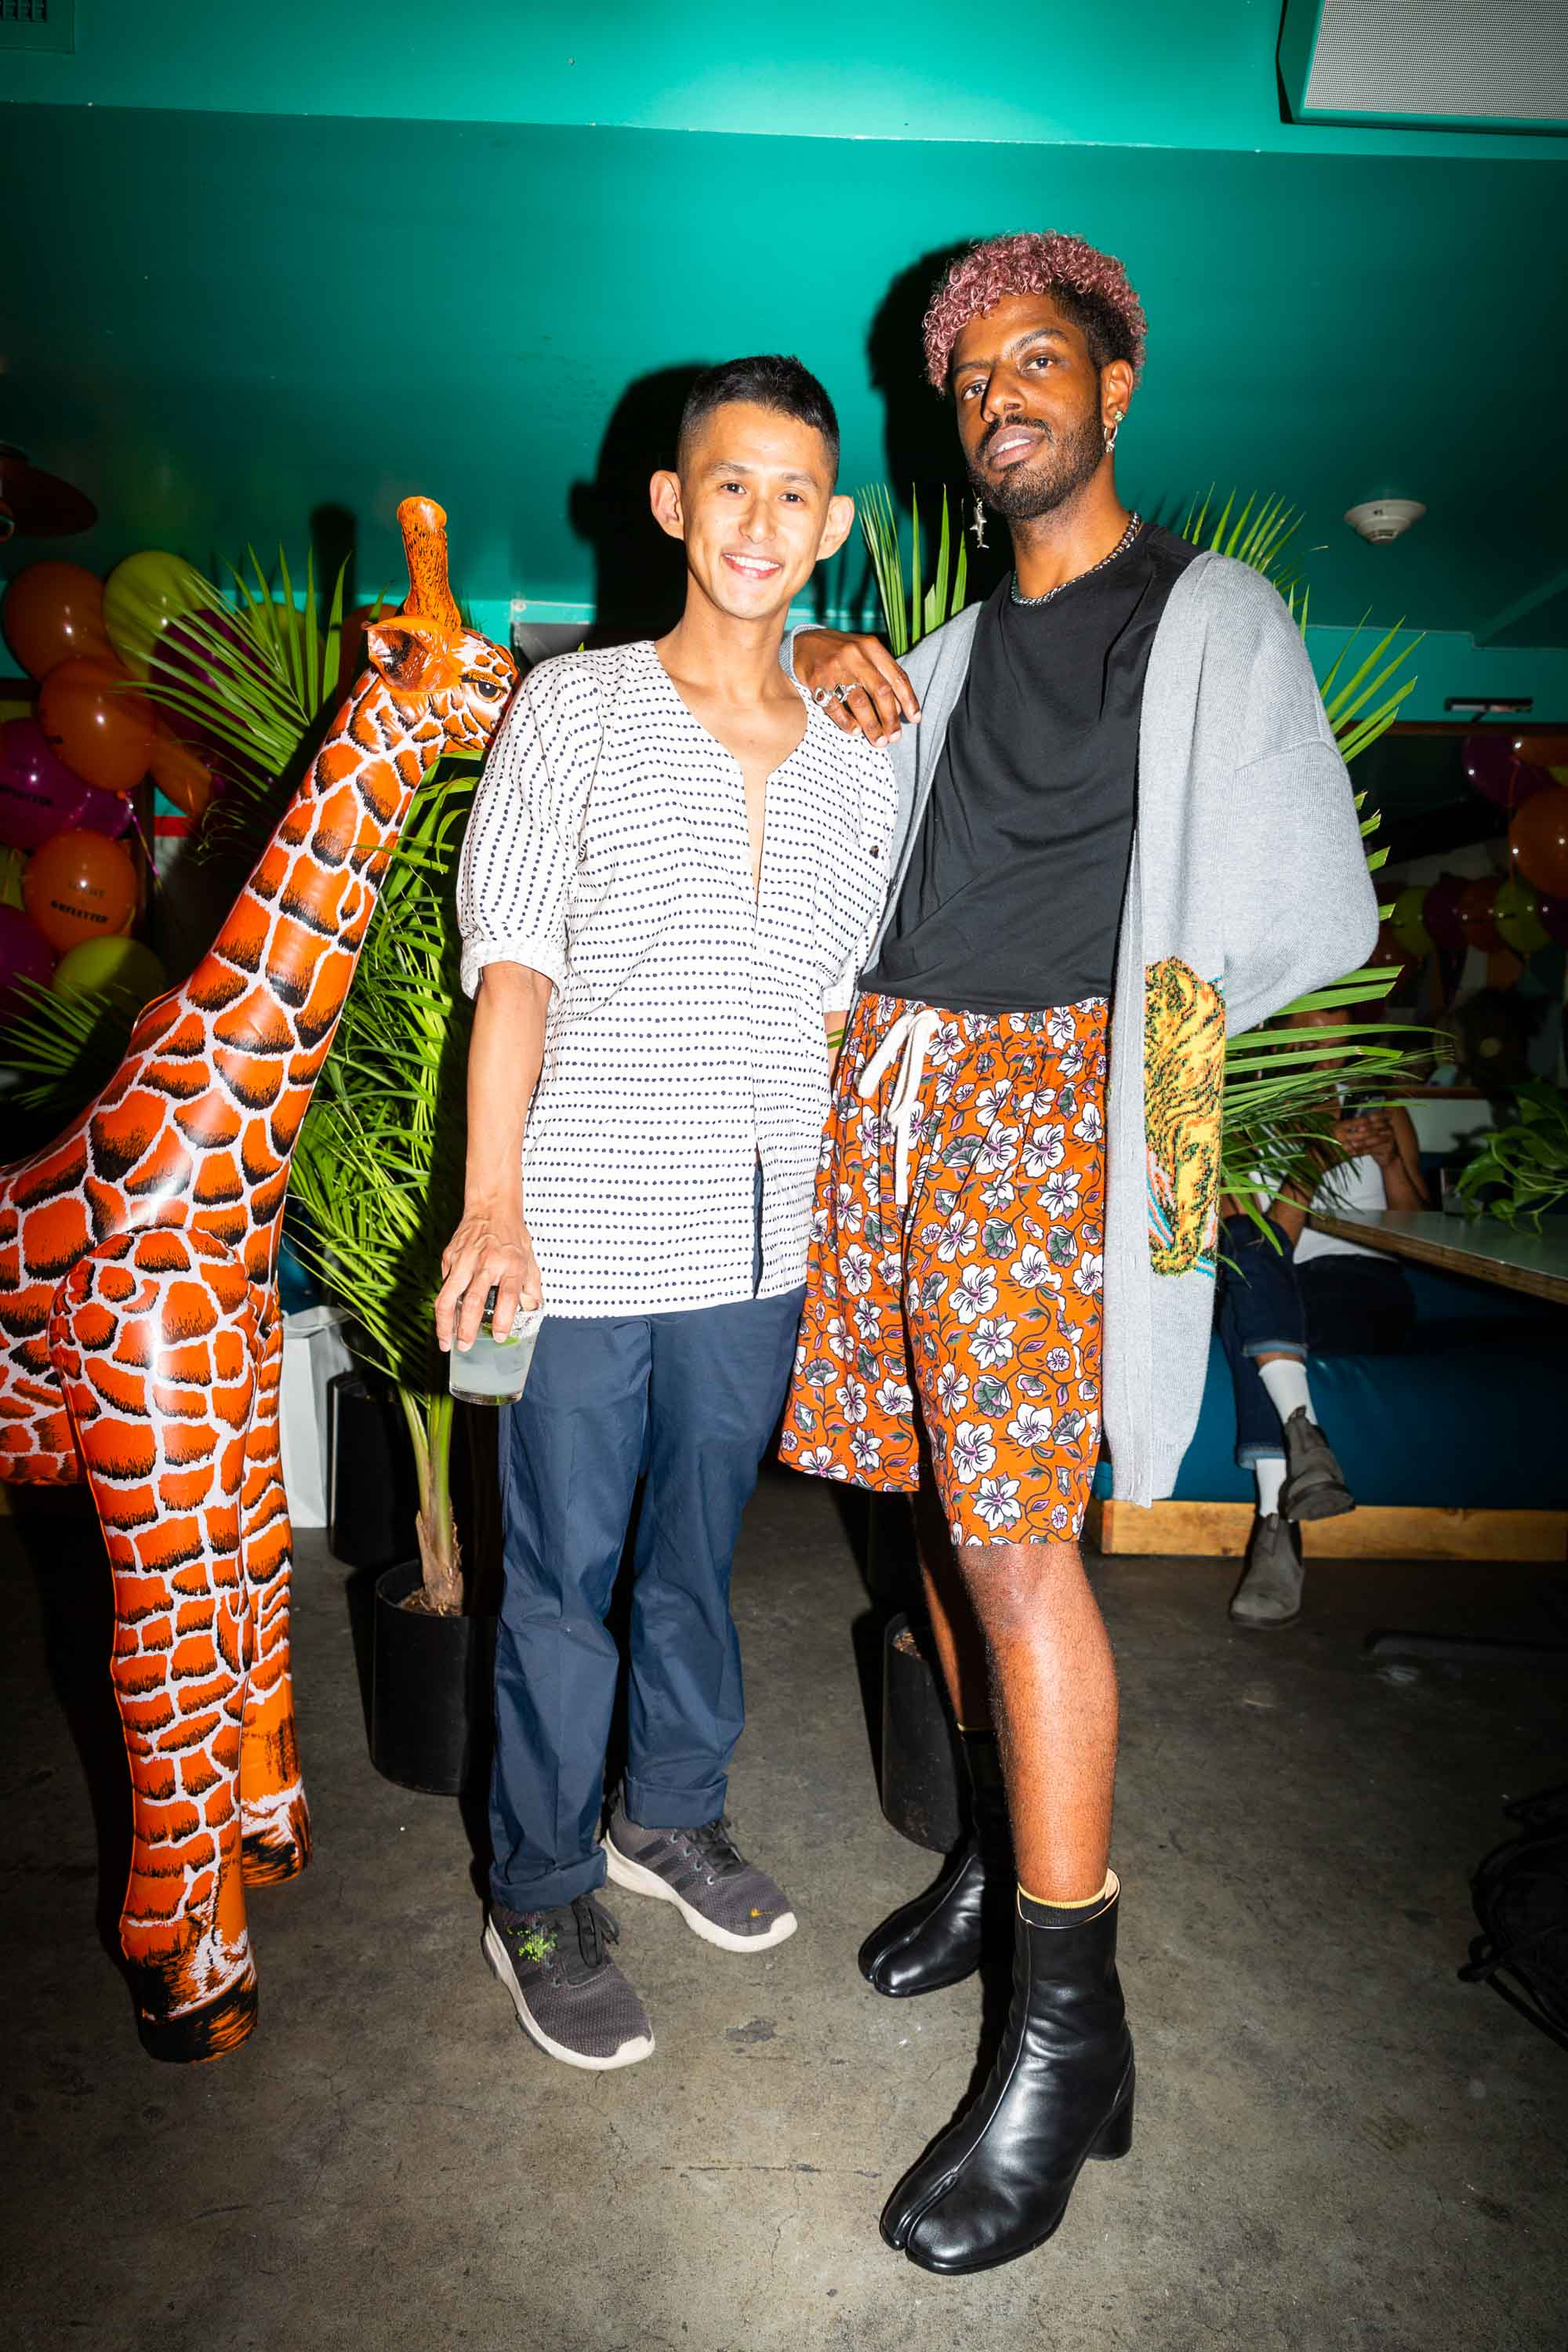 Leavy x Gayletter Issue10 Party-5441.jpg